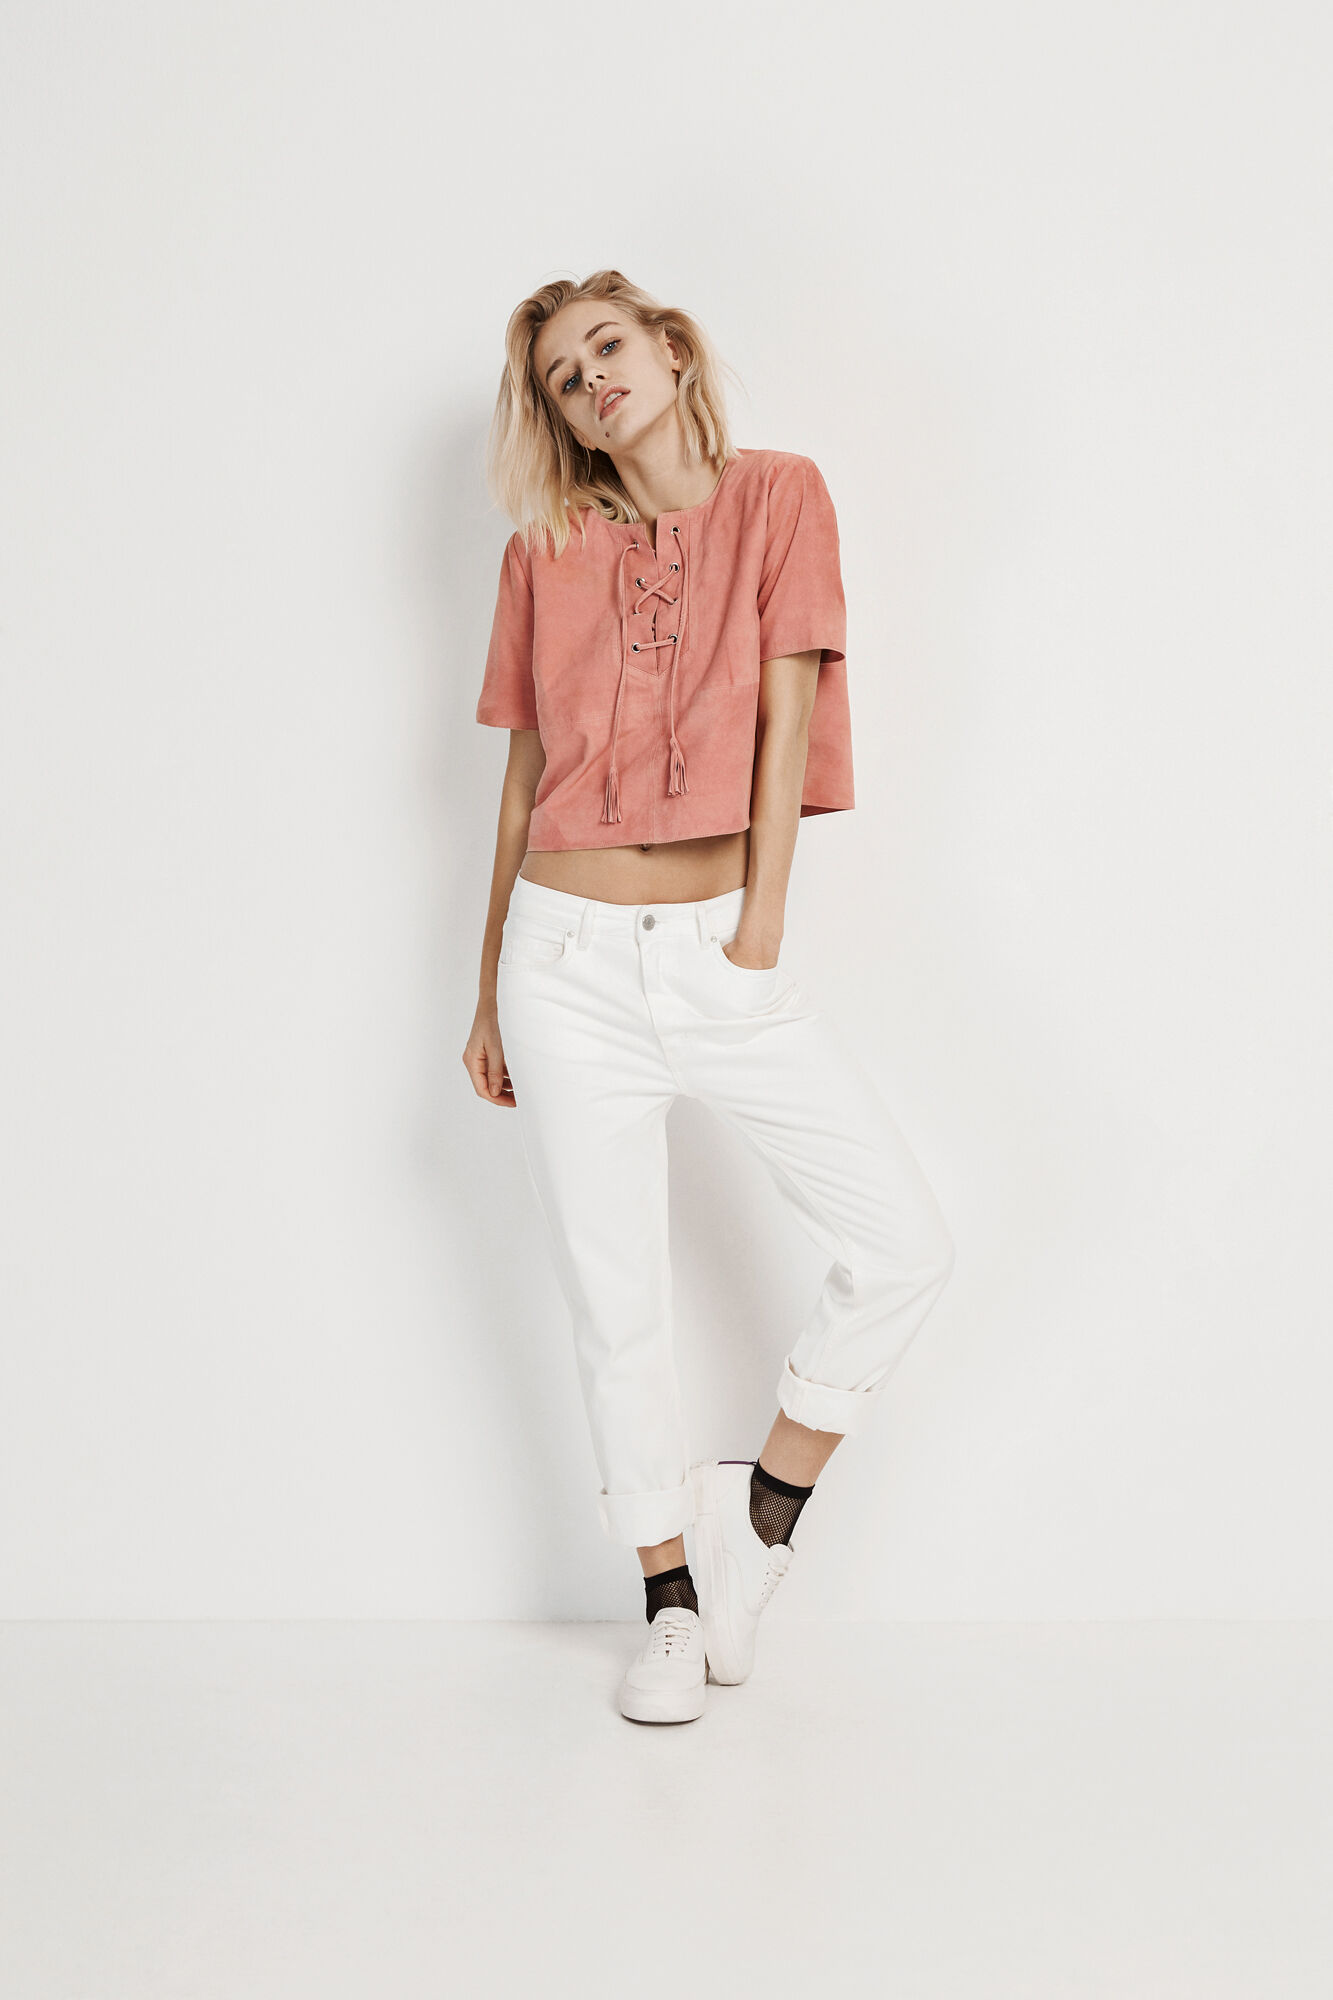 ENRODEO SS SUEDE TOP 6335